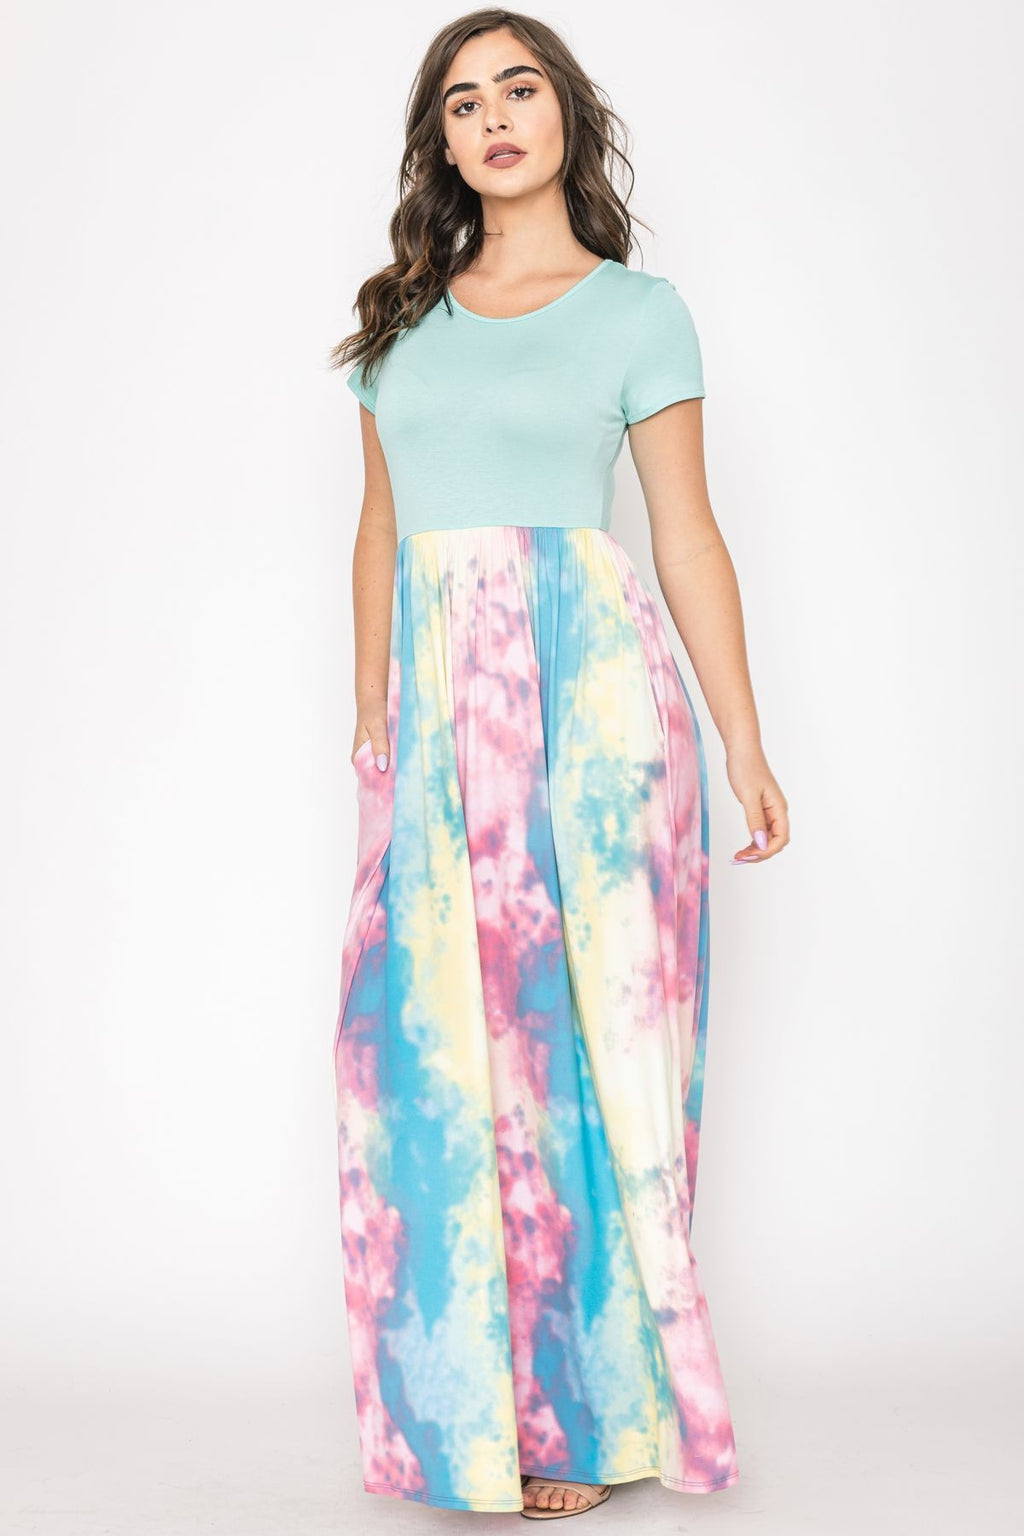 Mint Short Sleeve Pastel Tie Dye Maxi Dress